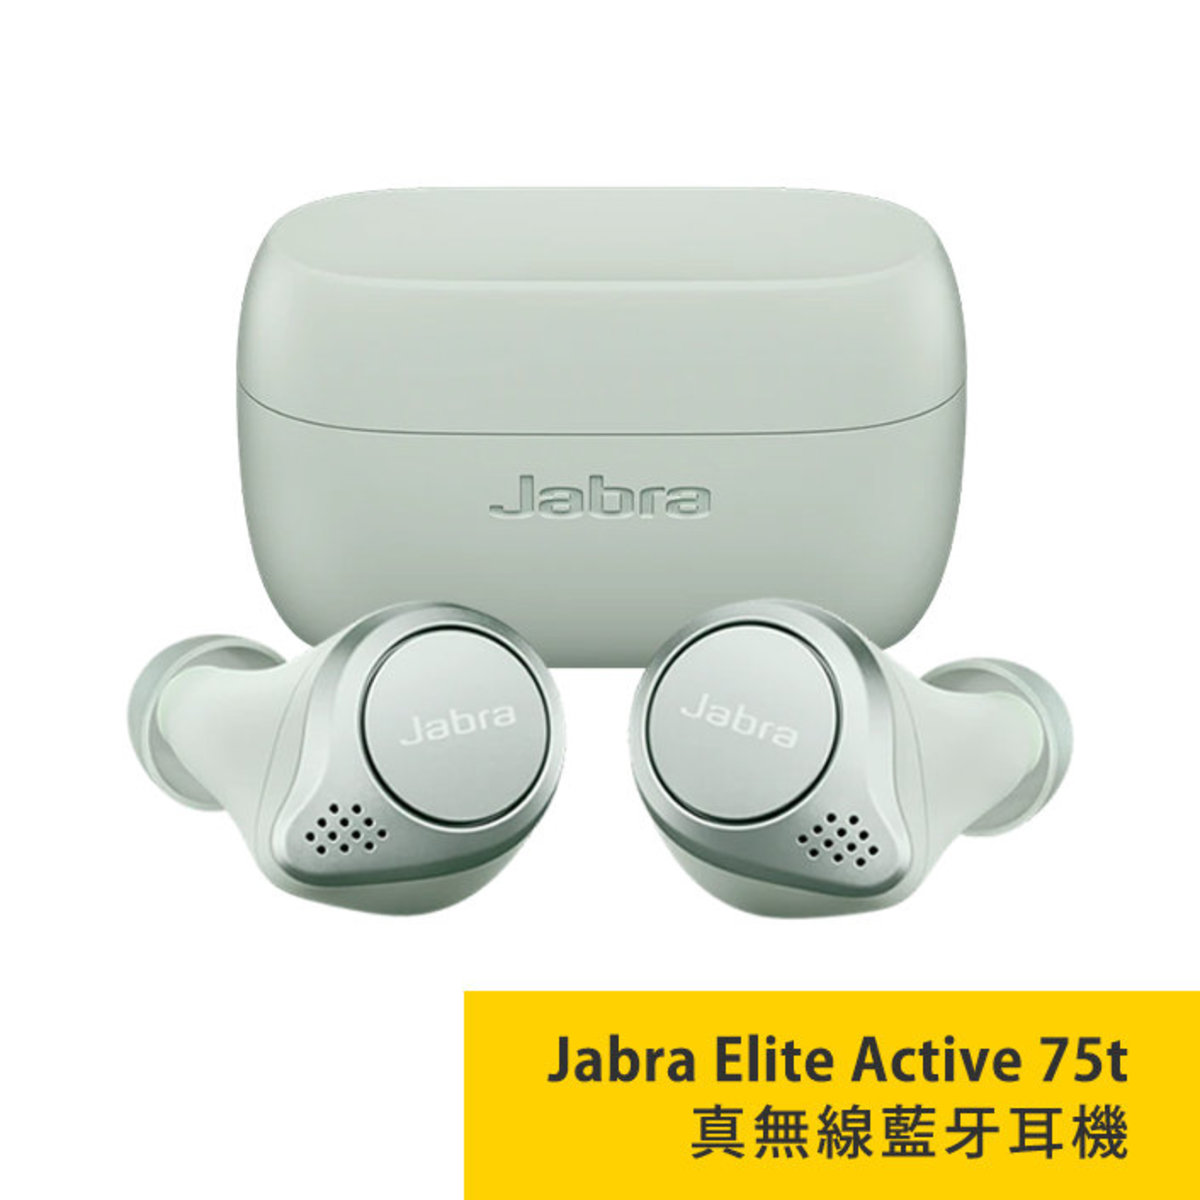 Jabra Elite Active 75t Compact Truly Wireless Earphone Mint Parallel Import Goods Color Mint Hktvmall Online Shopping